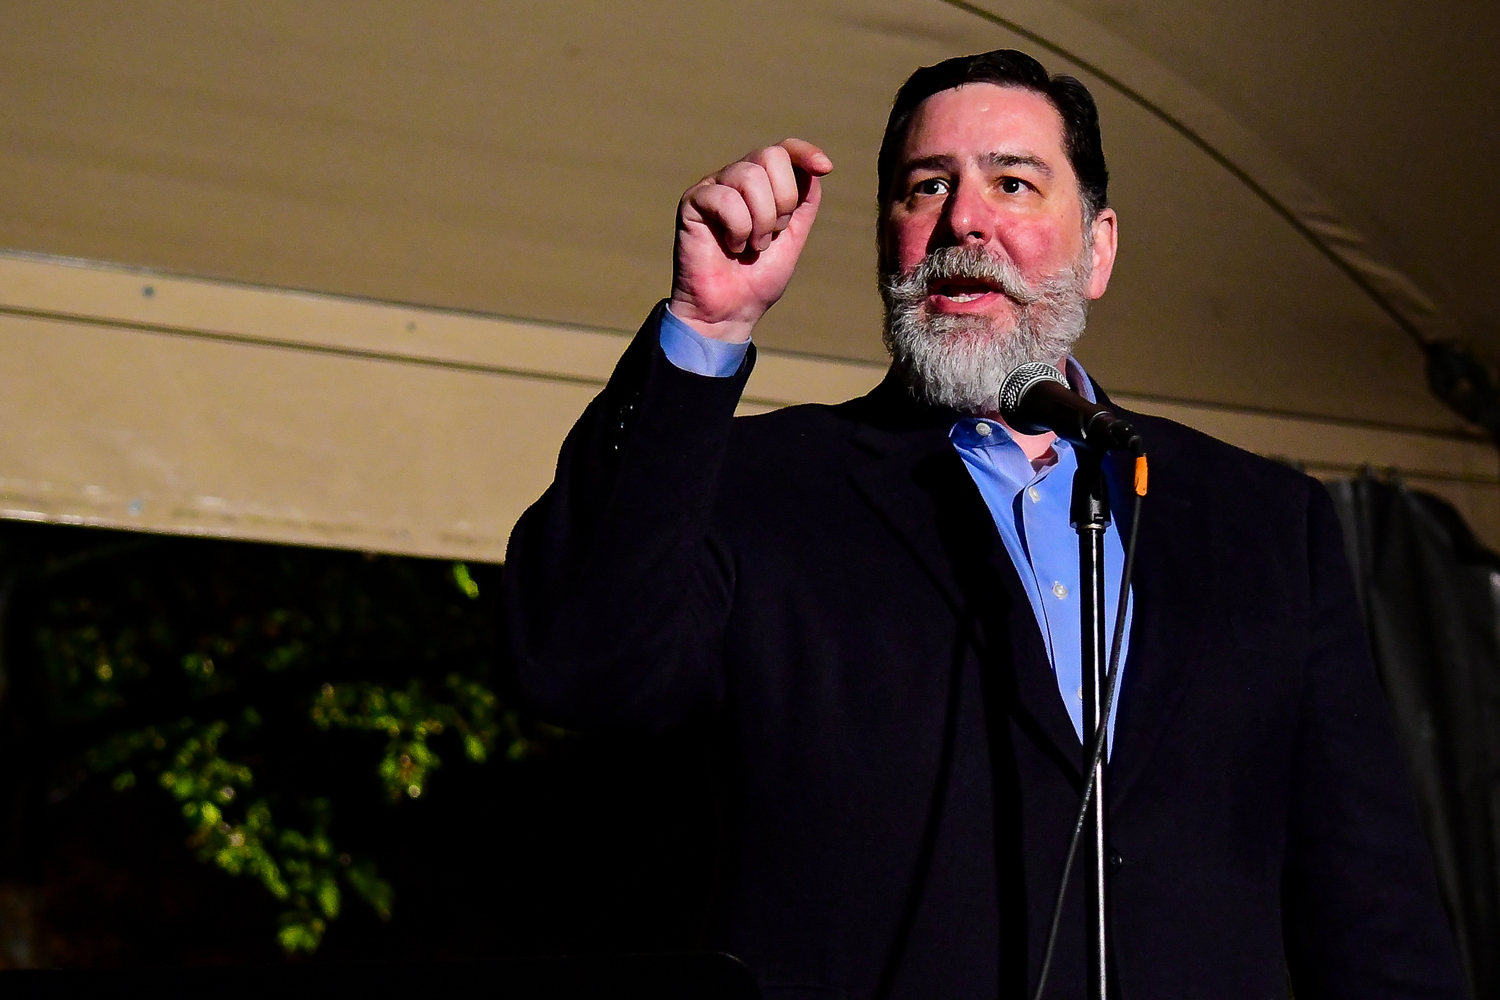 Pittsburgh Mayor Bill Peduto recently announced the City's plan to release its Amazon bid to the public, after months of refusing and claiming it contained trade secrets.